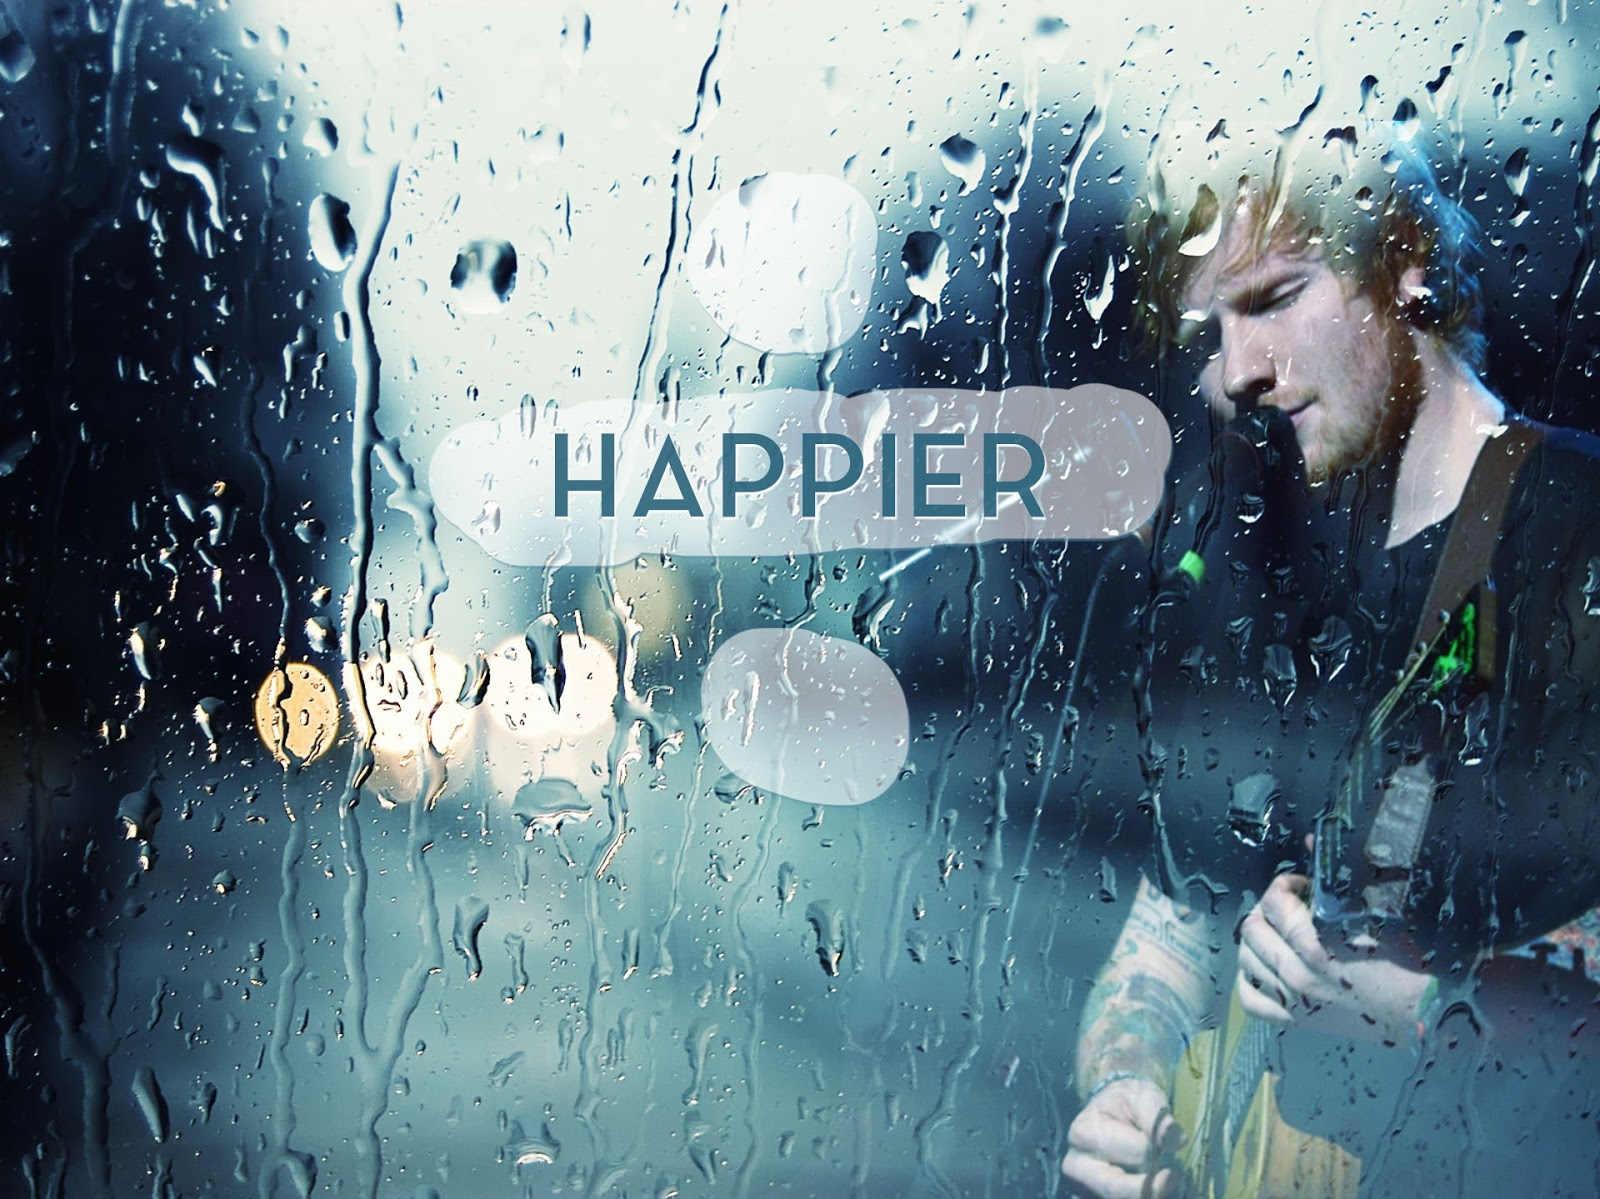 Happier - Ed Sheeran | Music Letter Notation with Lyrics for Flute